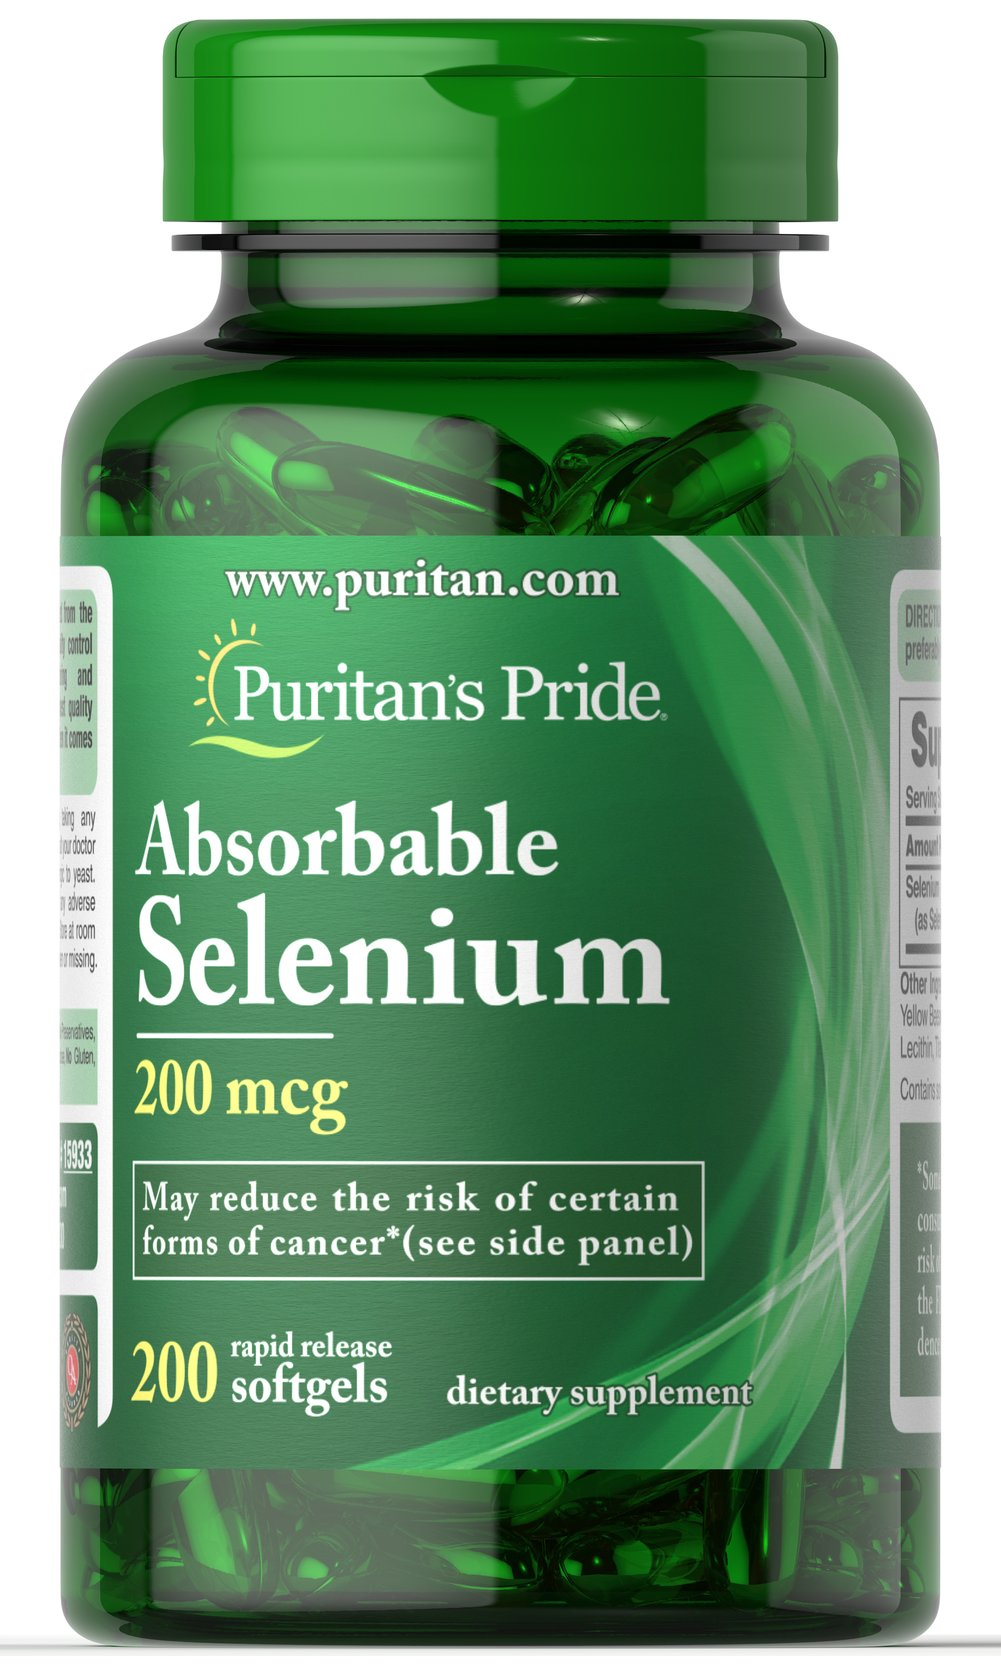 Absorbable Selenium 200 mcg <p>Now this powerful antioxidant is even easier for the body to utilize — new Absorbable Selenium from Puritan's Pride.  It's well known as a significant help in fighting cell-damaging free radicals in the body and in supporting a healthy immune system**. Get all the antioxidant and immune system power of selenium in a readily absorbable form with Puritan's Pride Absorbable Selenium Softgels.**</p> 200 Softgels 200 mcg $14.99